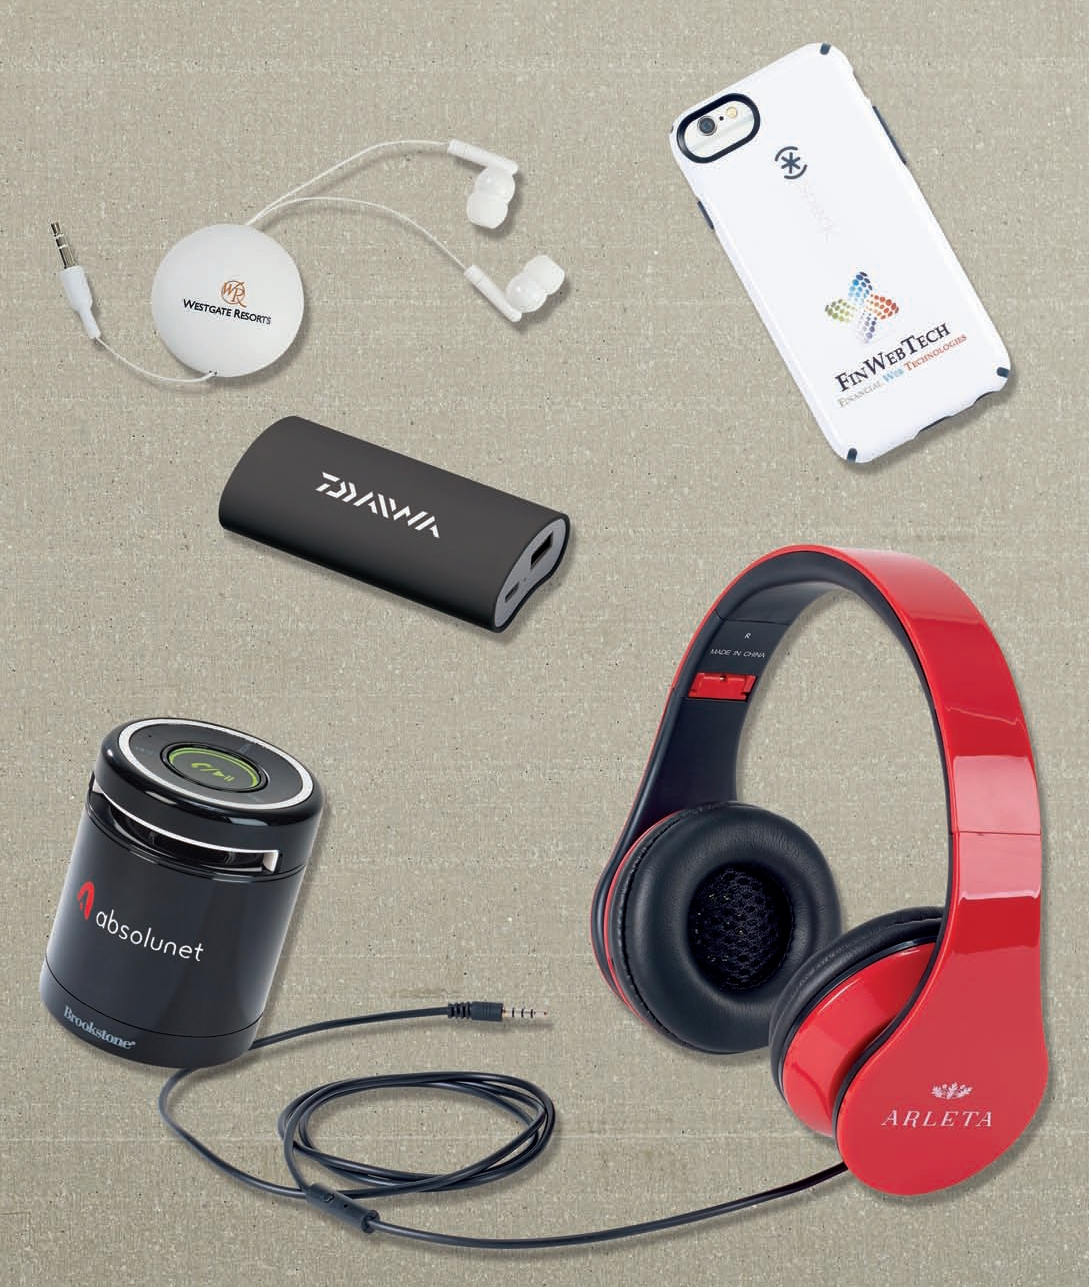 Custom printed logo bluetooth speakers and headphones for events and promotions